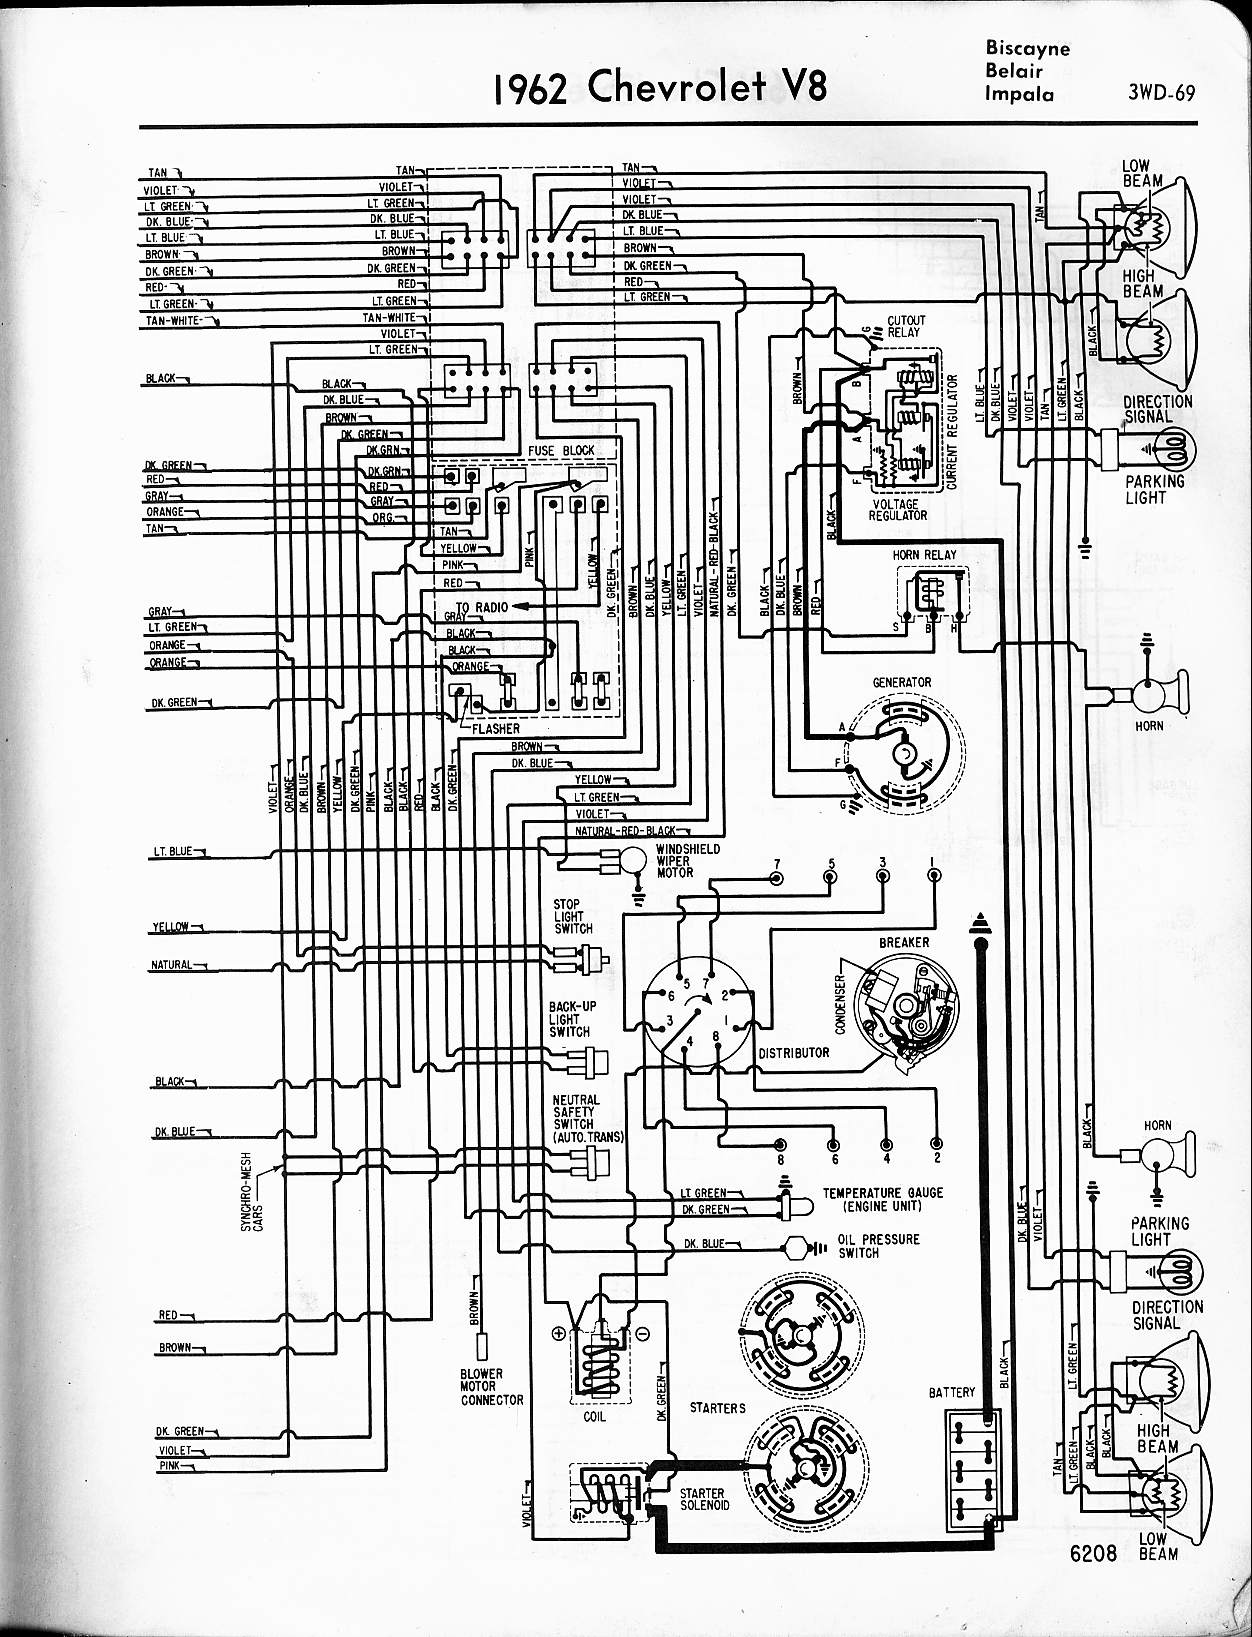 57 65 chevy wiring diagrams rh oldcarmanualproject com 1962 chevy nova wiring diagram 1962 chevy nova wiring diagram